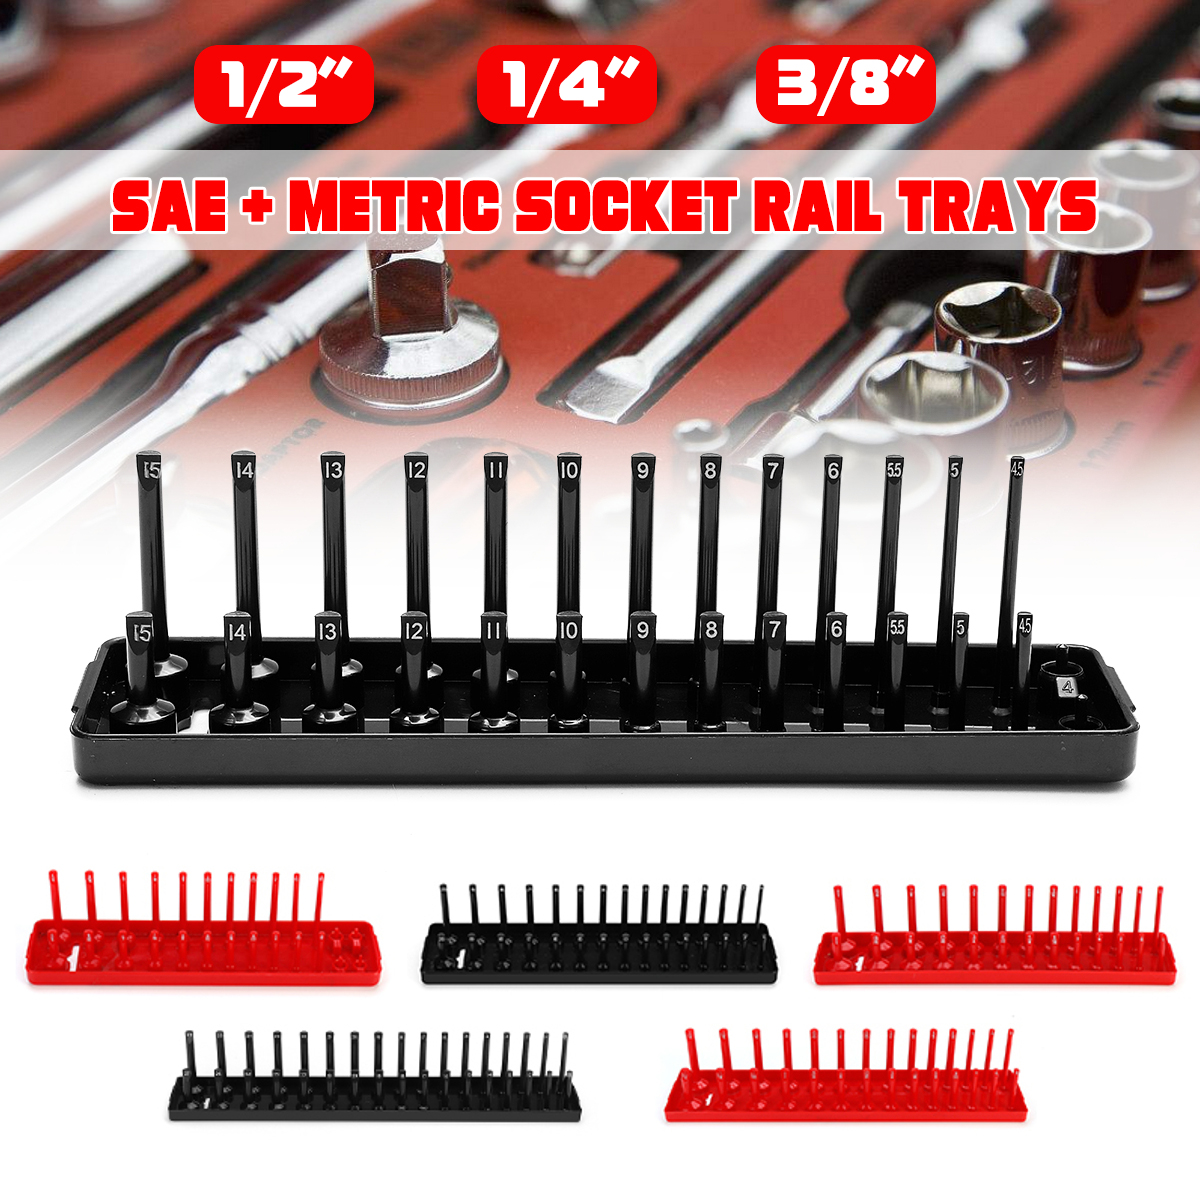 6Psc 1/4 3/8 1/2 SAE & Metric Socket Rail Trays Shelf 172-Slot Organizers Kit Plastic Black Red for Garage and Workshop Use 6psc top stage